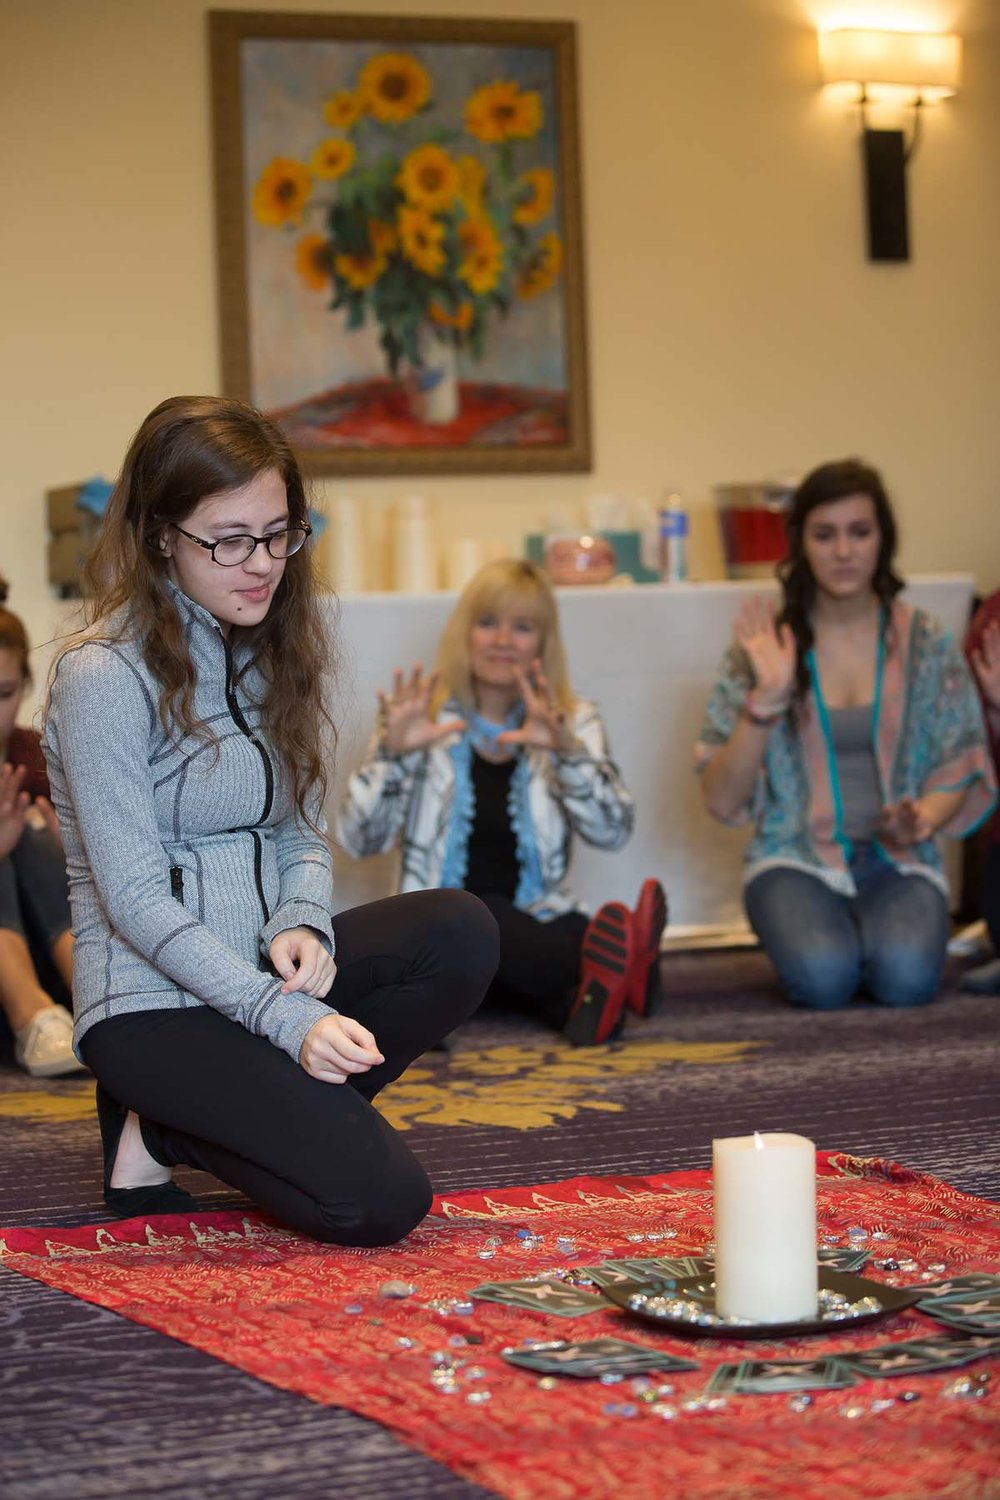 ehw_MothersDay2016-149 of 270).jpg